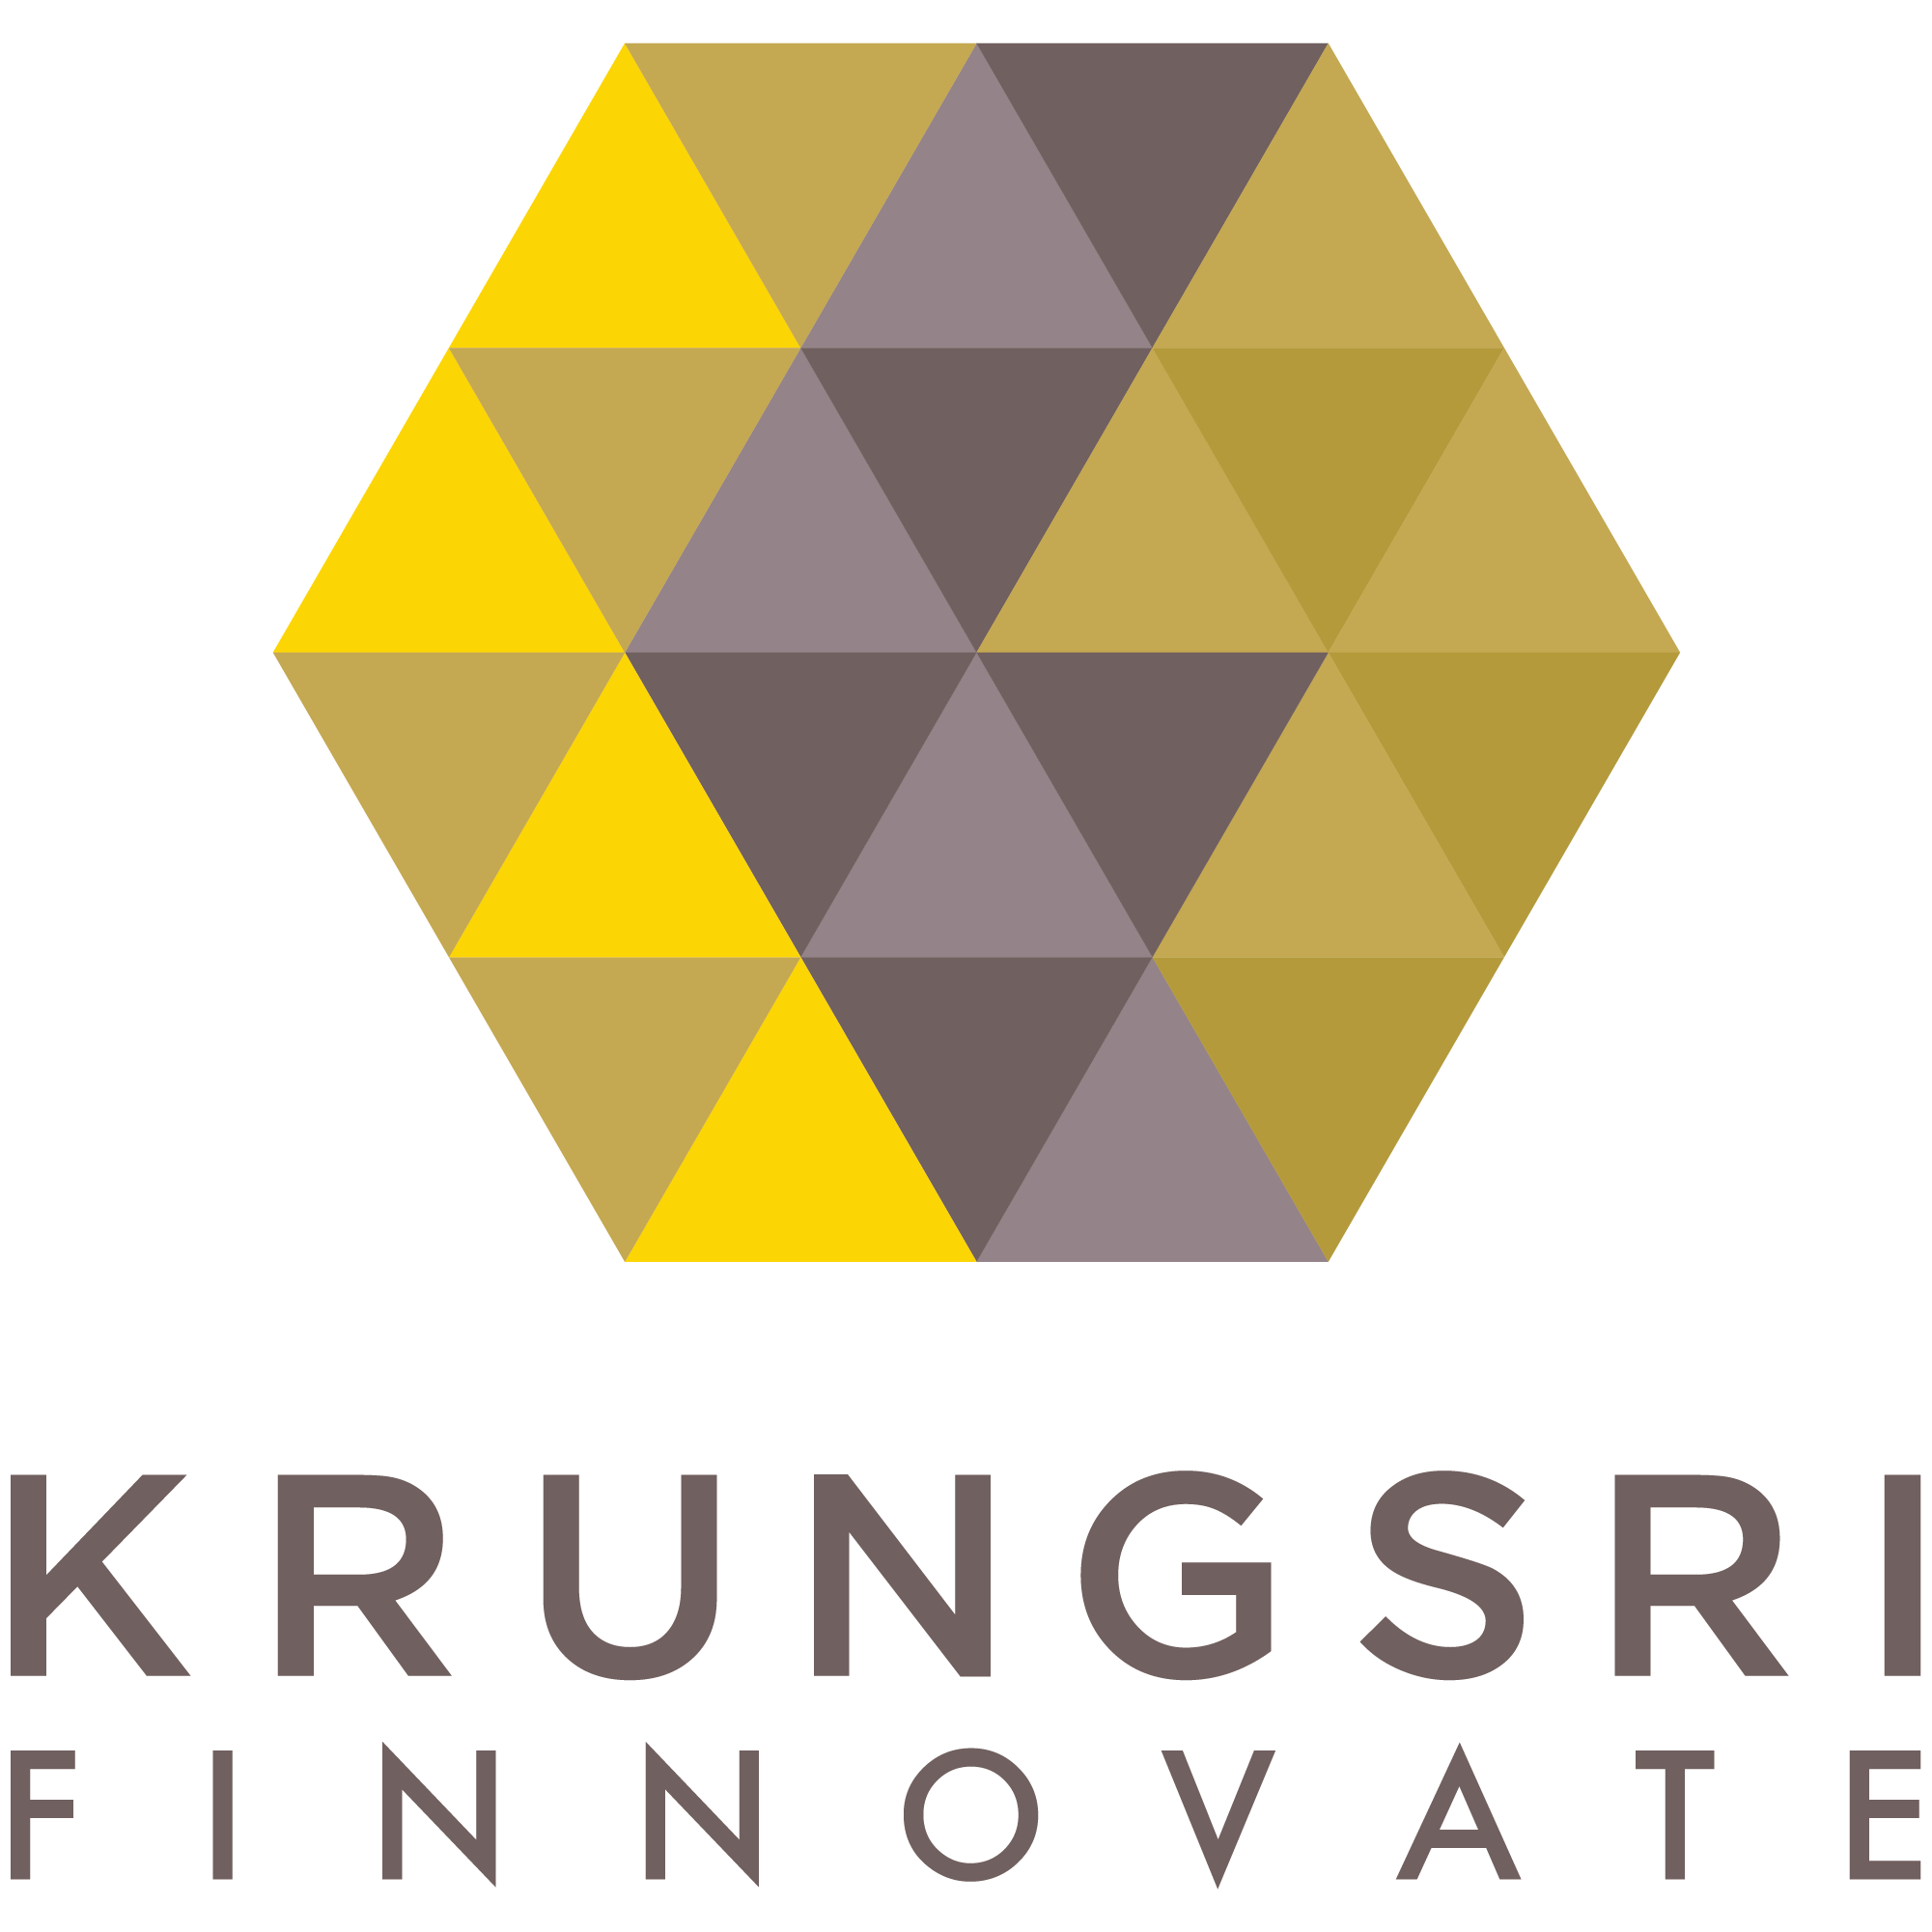 finnovate logo-08